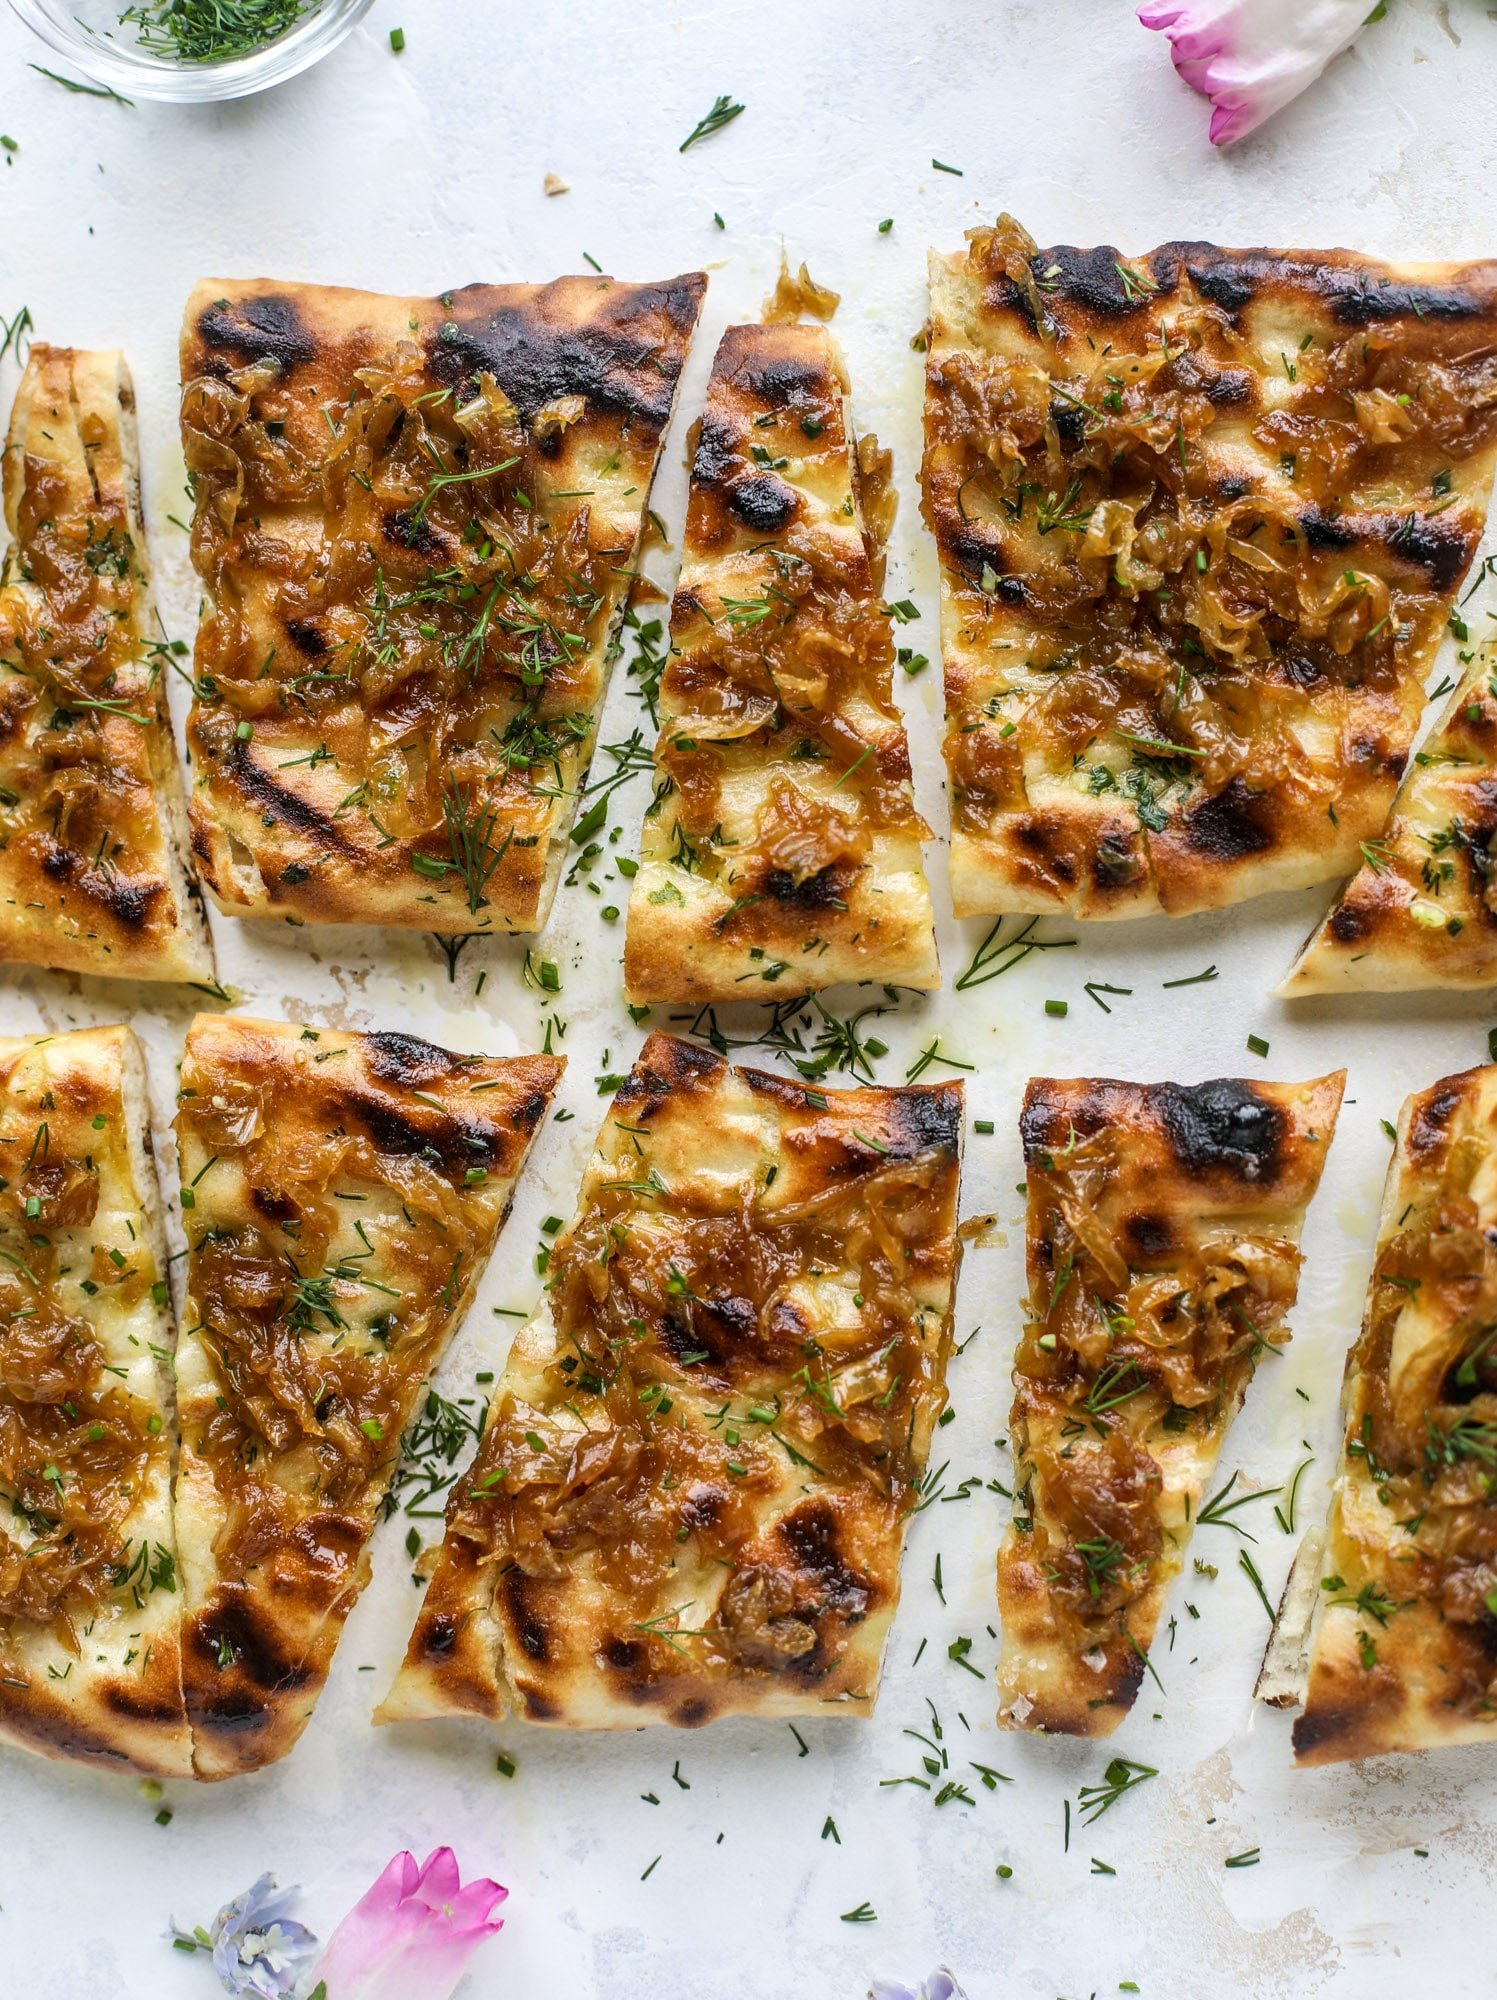 Grilled focaccia bread is such a treat! Topped with puddles of garlic butter, fresh chopped herbs and golden, caramelized onions, it's a slice of heaven.